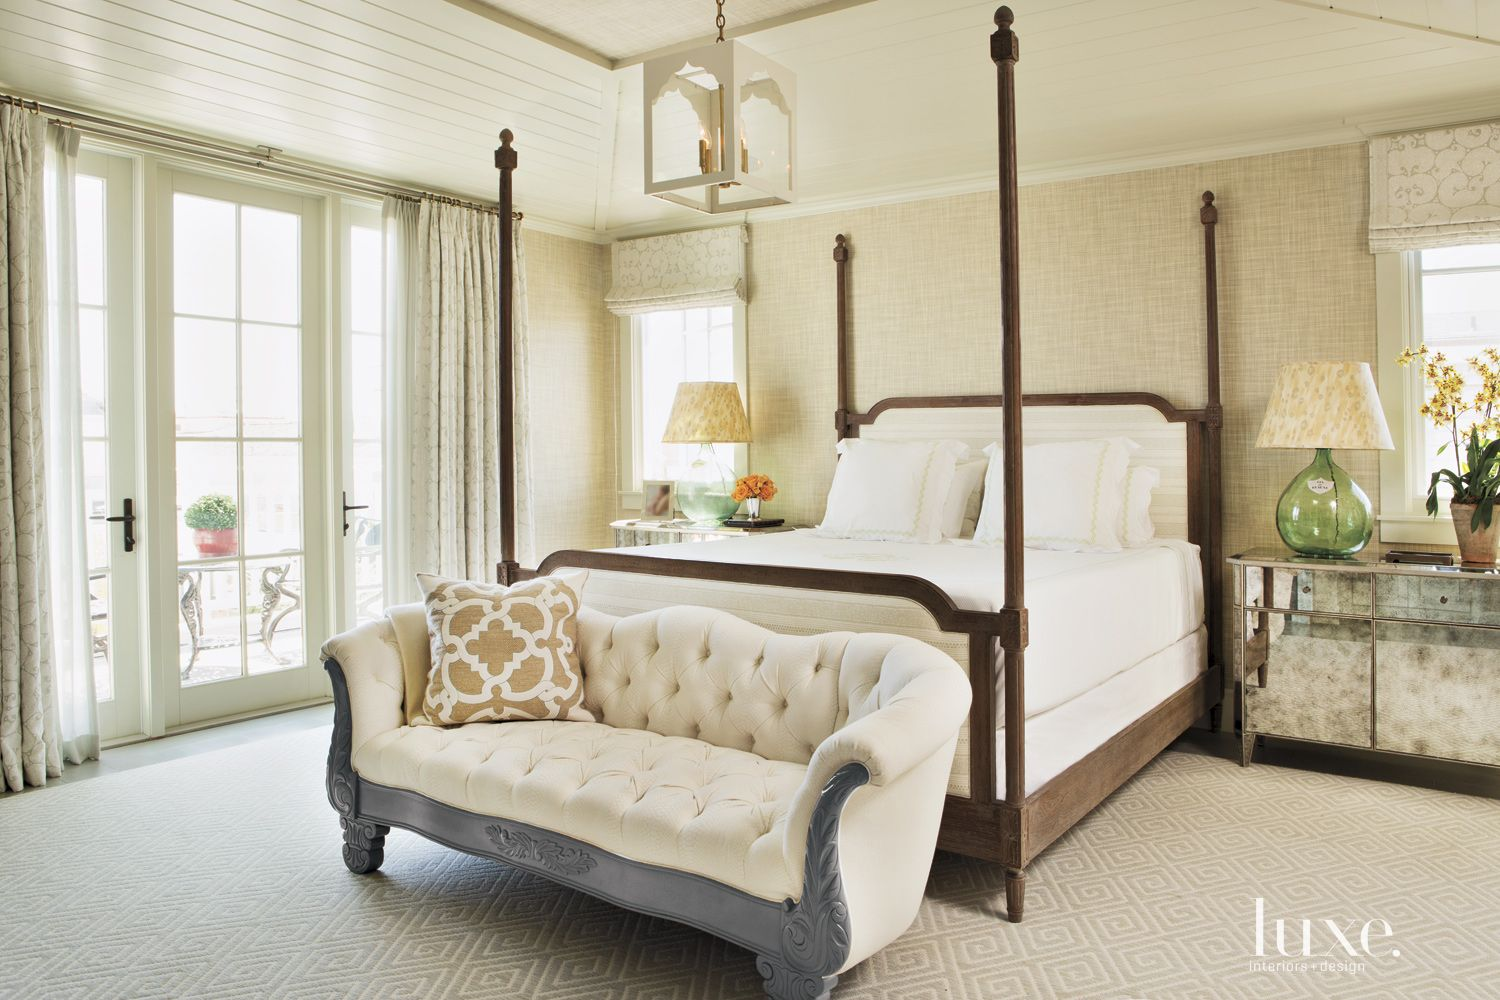 Contemporary Cream Master Bedroom with Four-Poster Bed